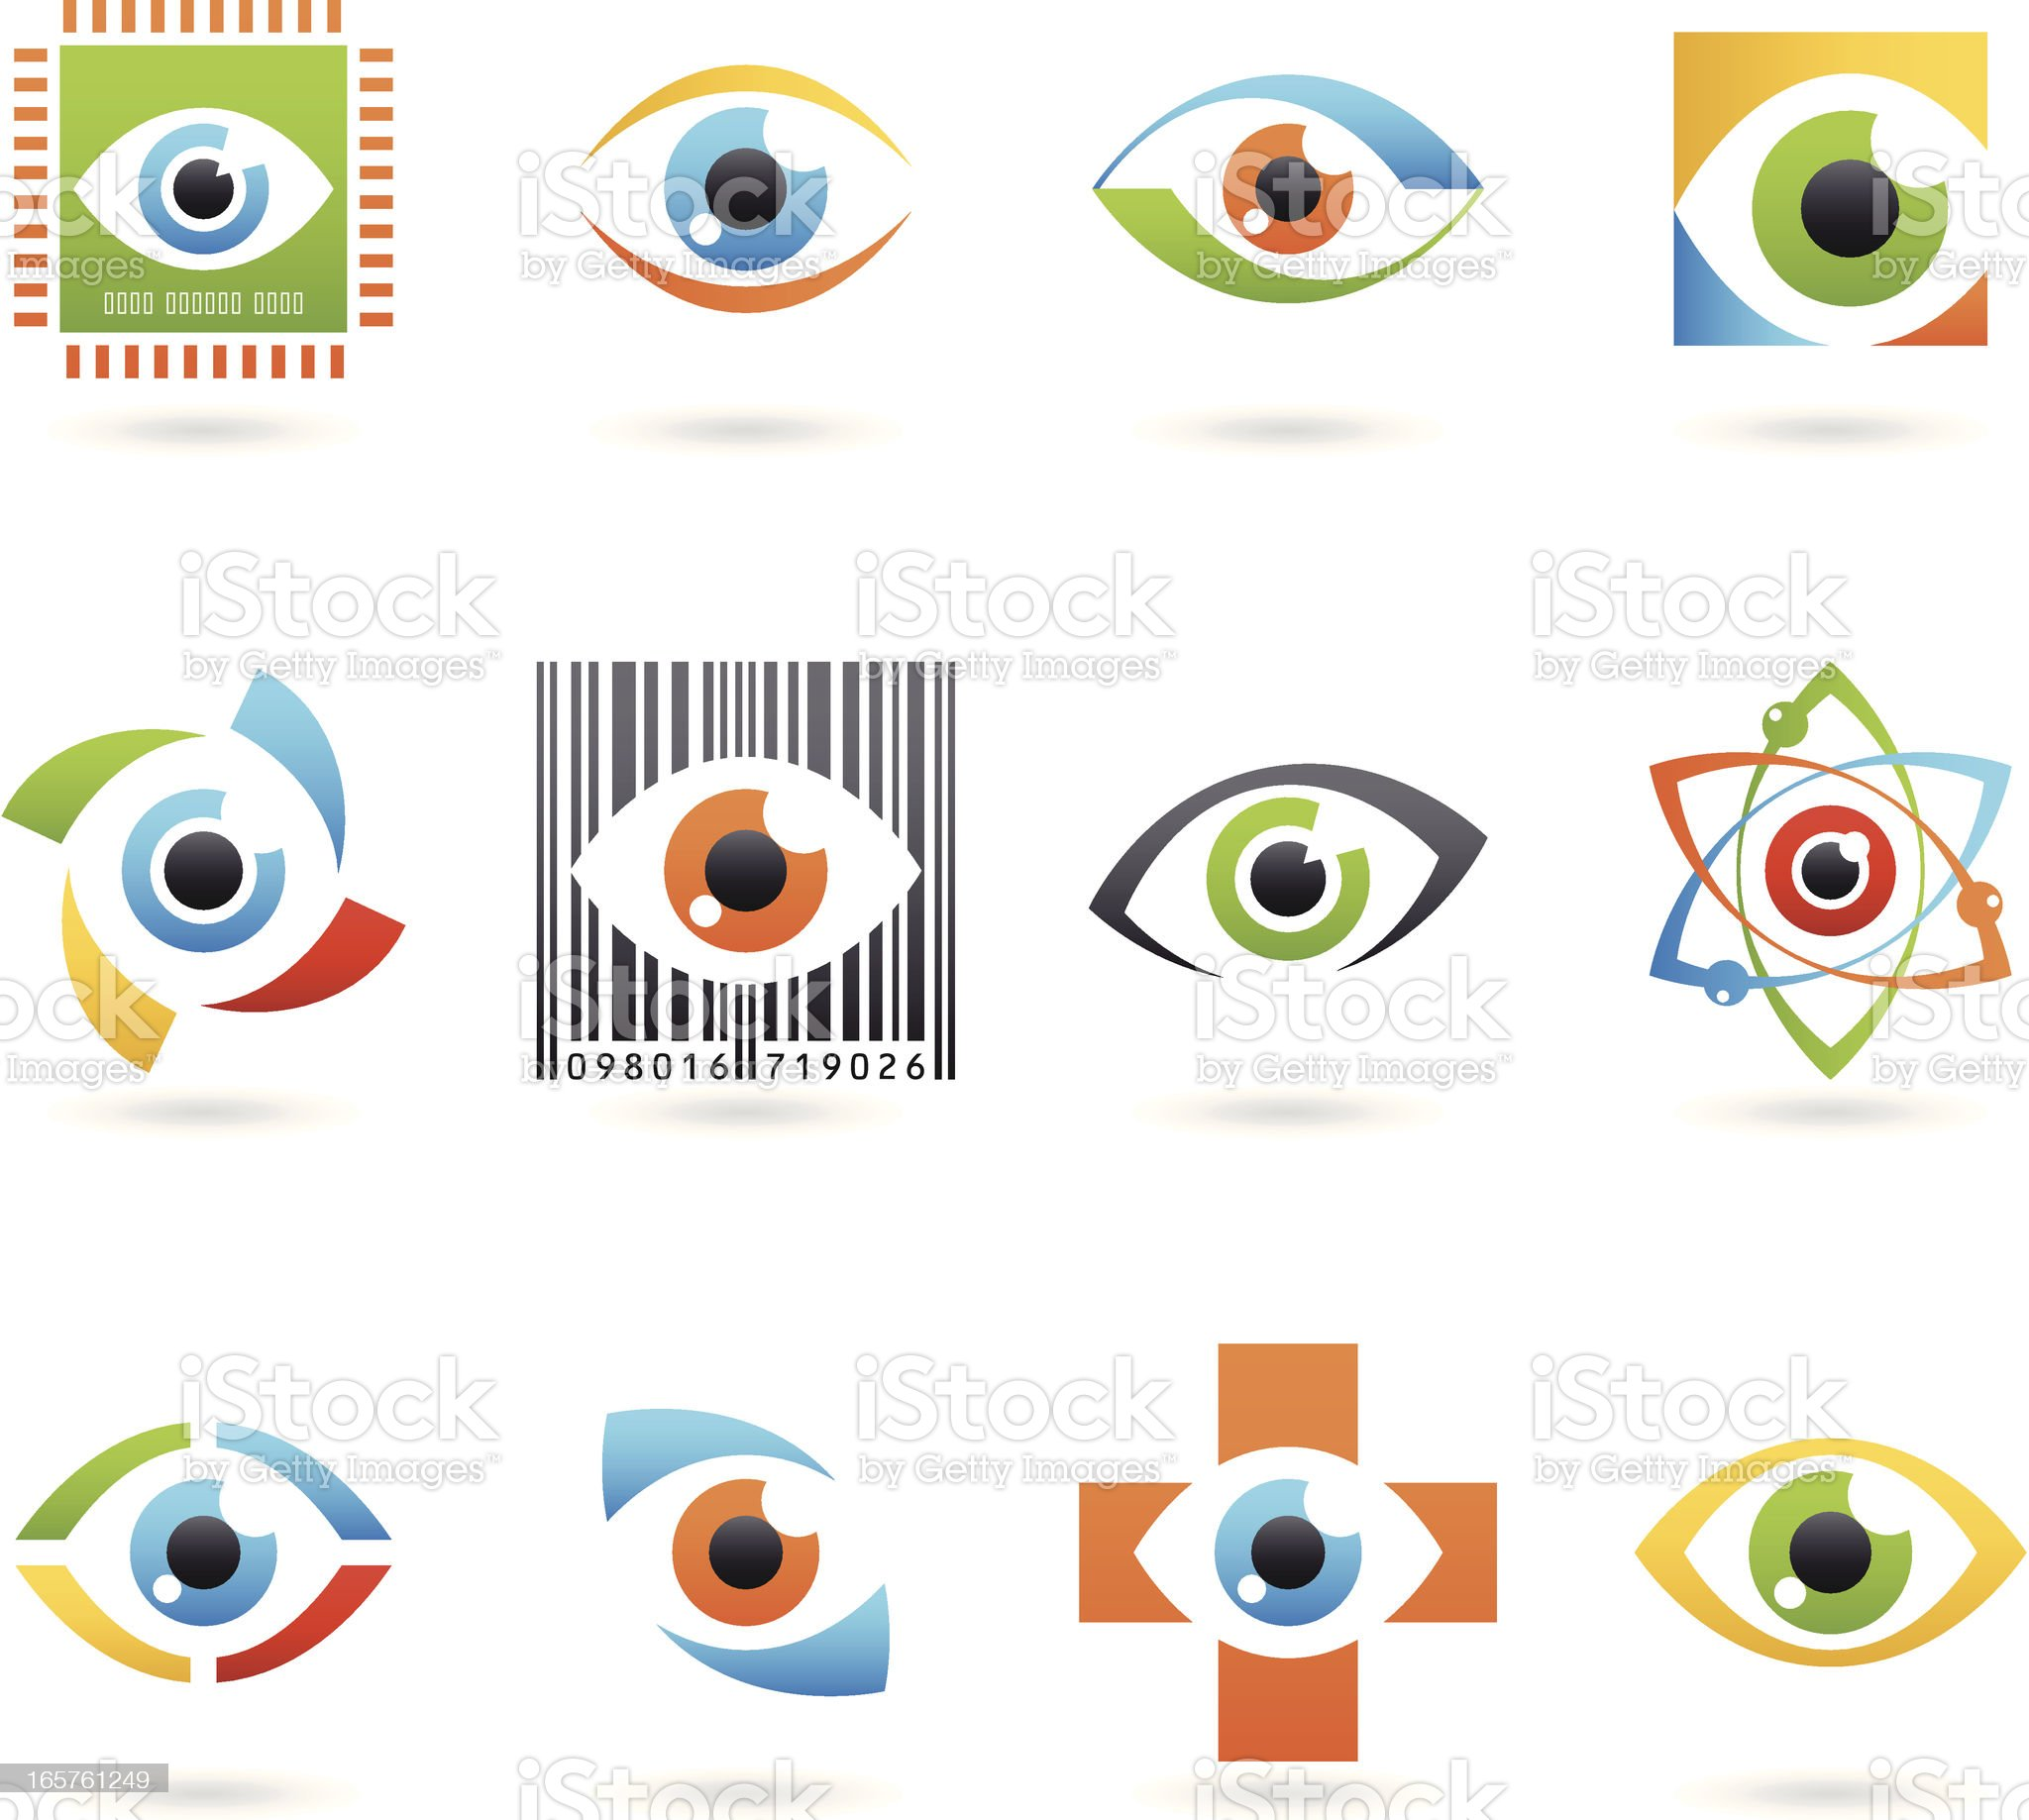 Abstract Eye Icons royalty-free stock vector art